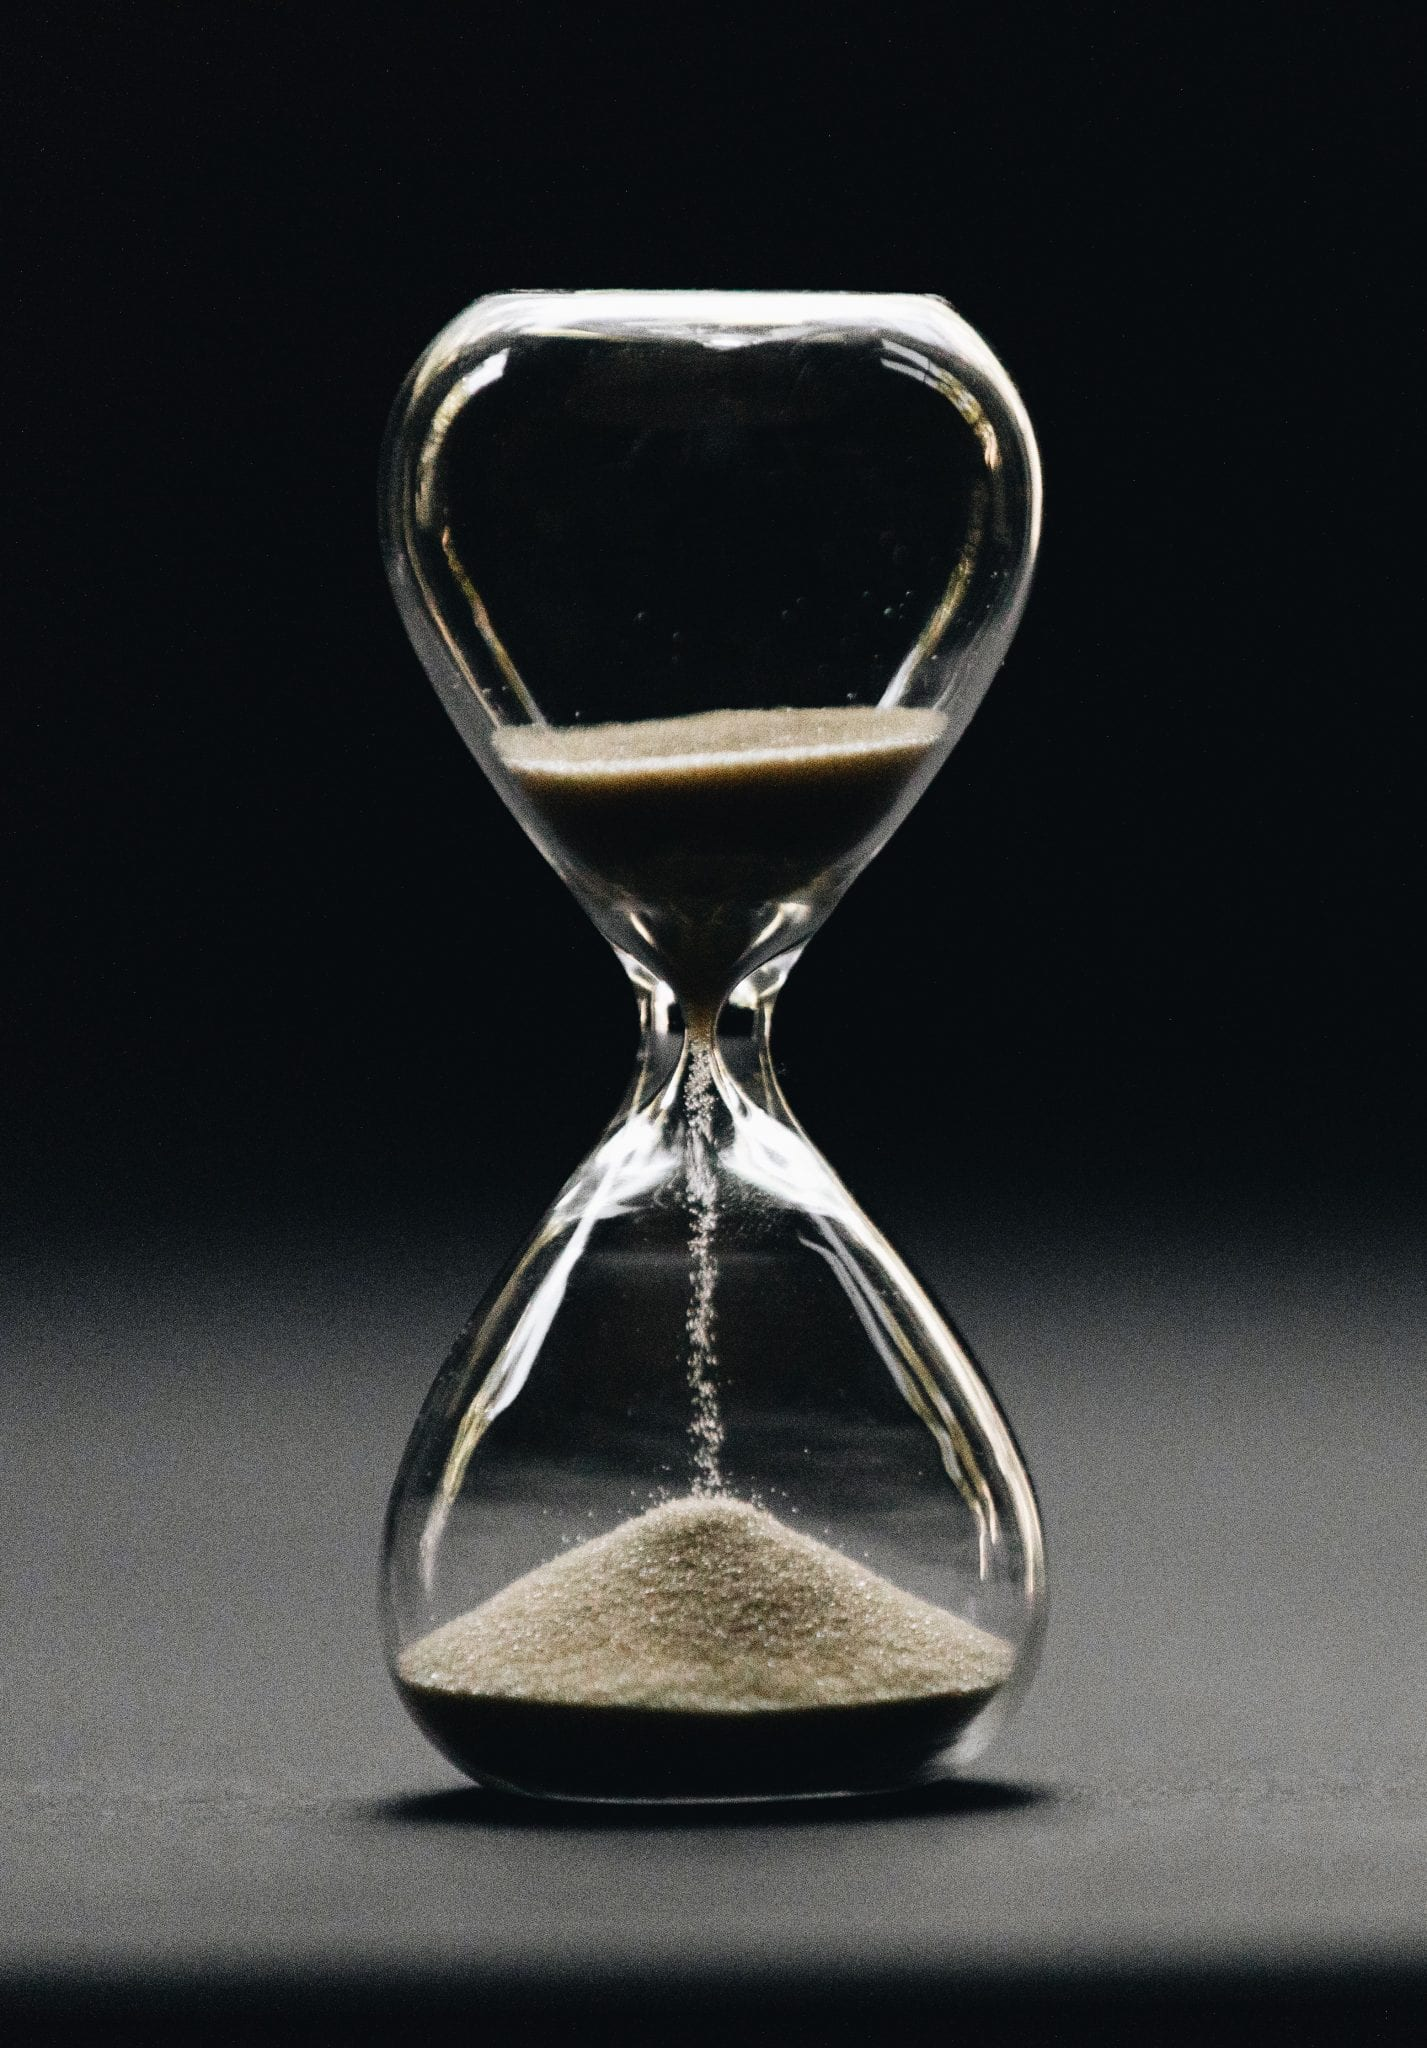 Time is ticking for all.. 1